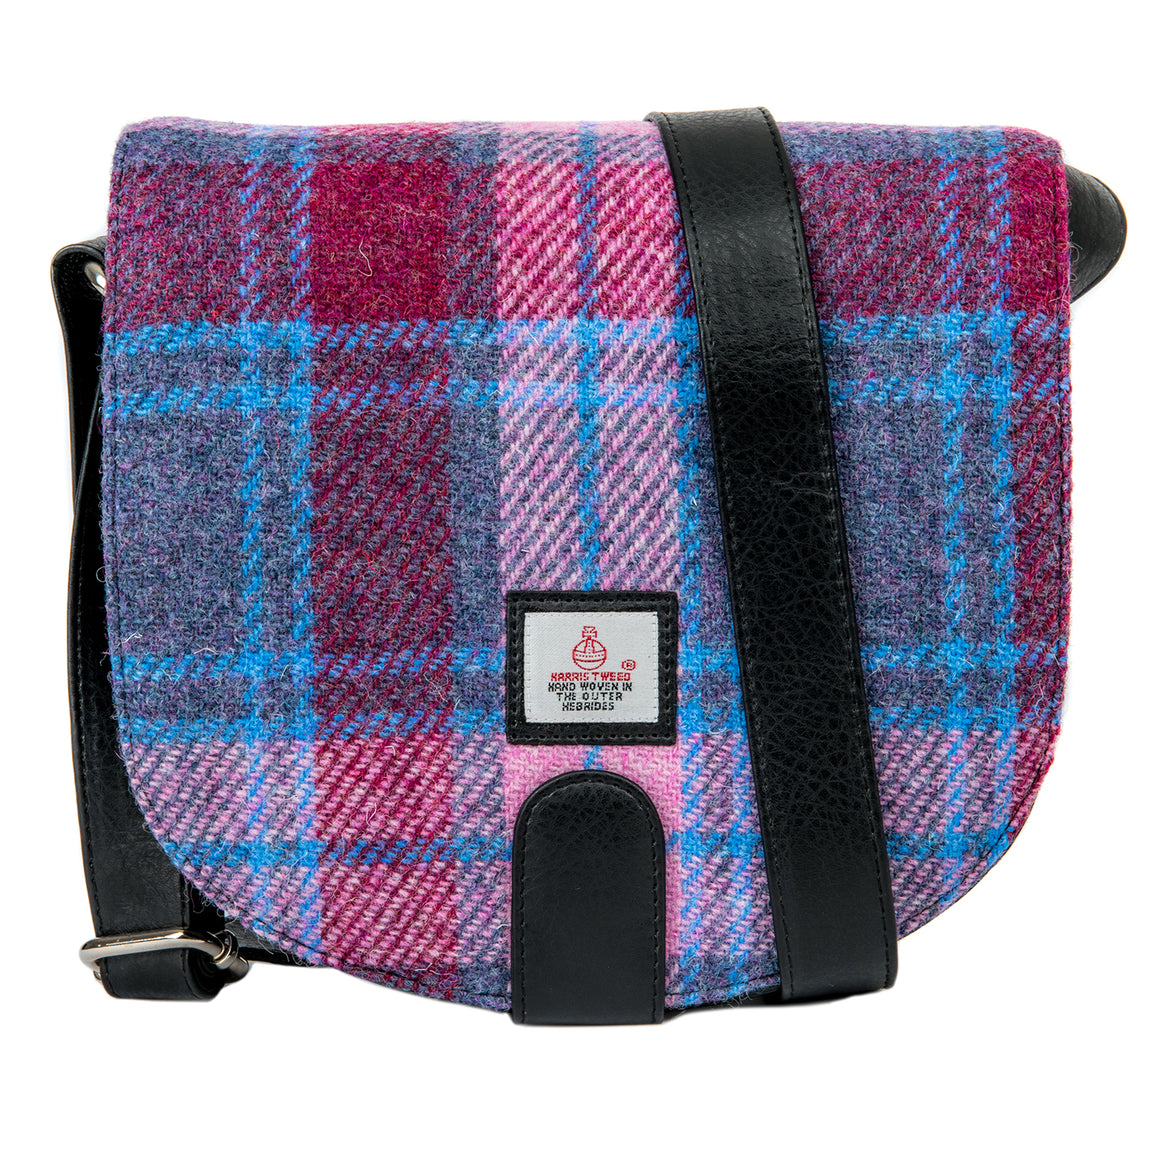 Harris Tweed - Small Cross Body Bag - Pastel Pink